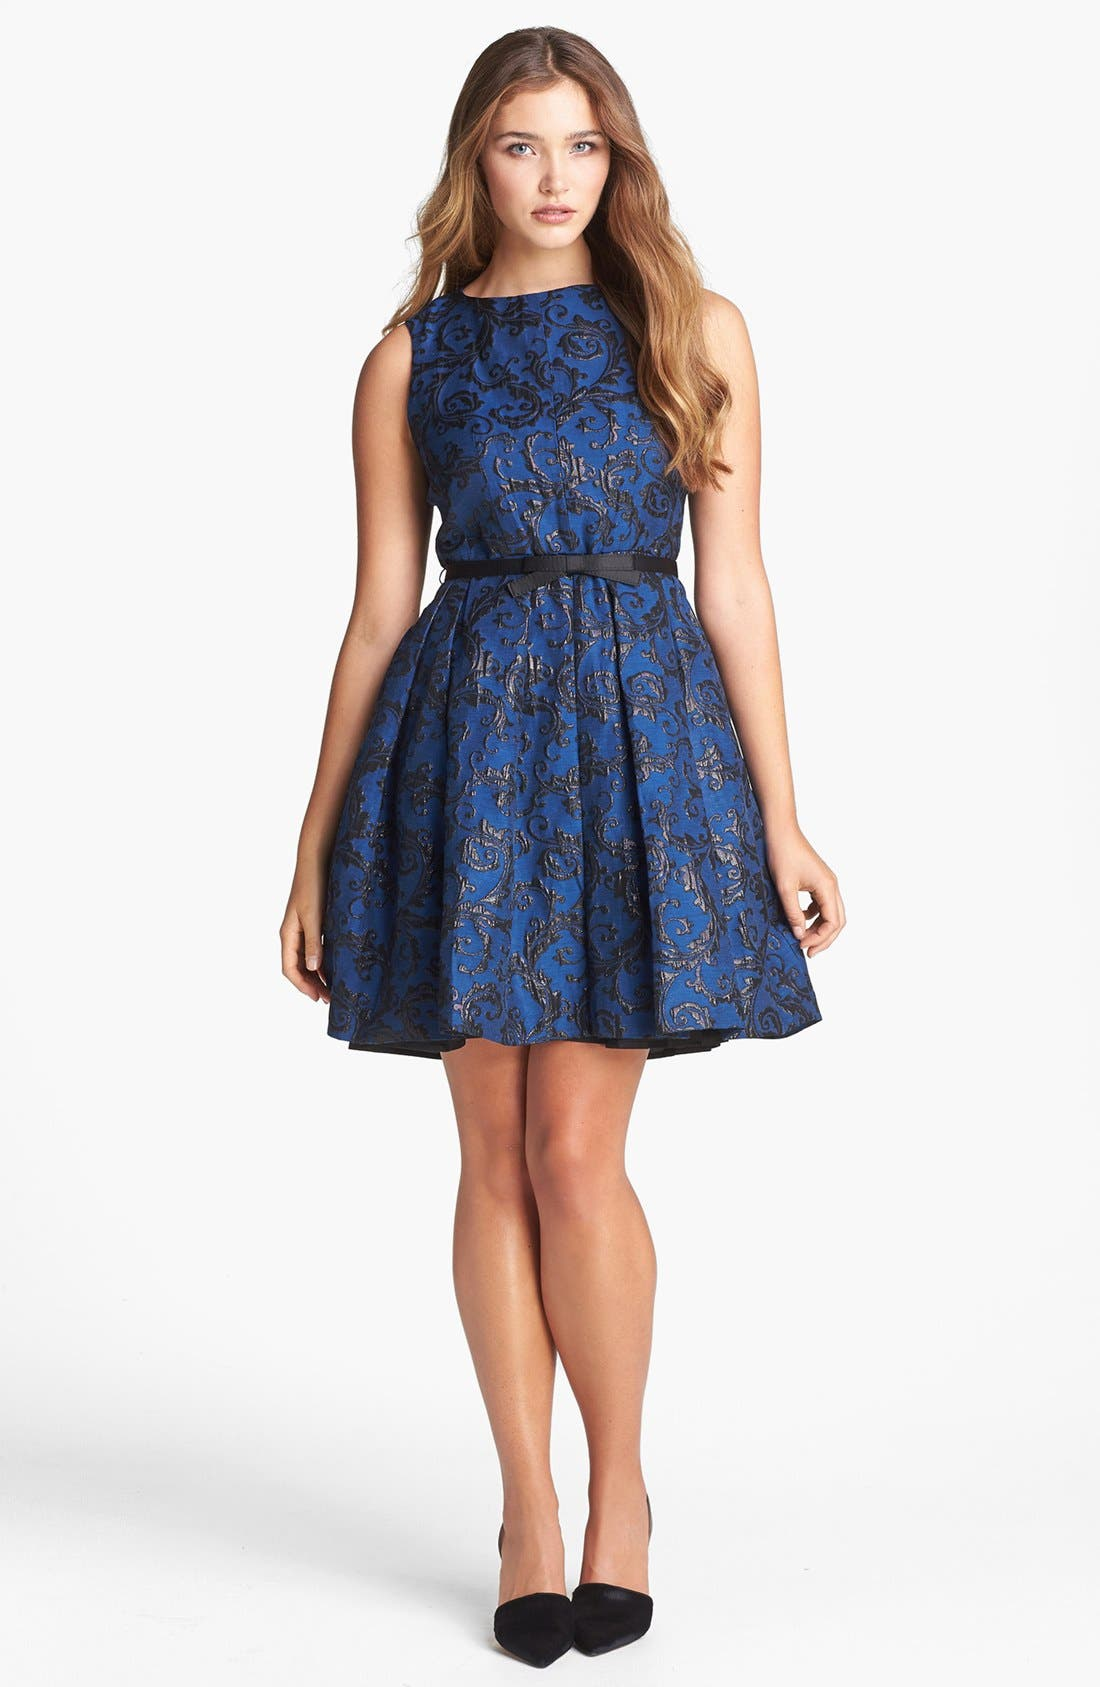 Main Image - Taylor Dresses Metallic Jacquard Fit & Flare Dress